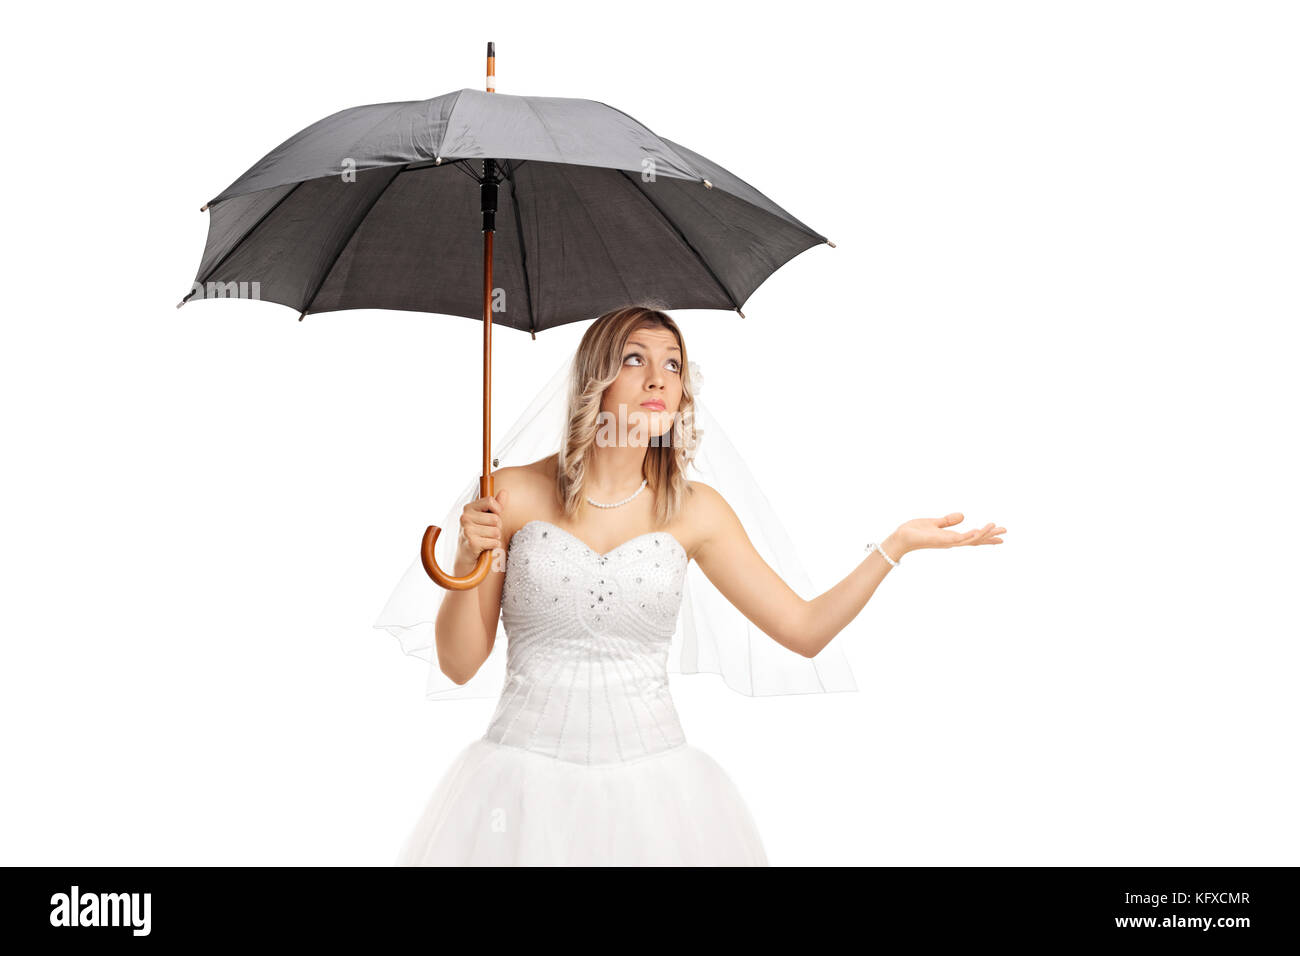 Wedding Umbrella Stockfotos & Wedding Umbrella Bilder - Alamy